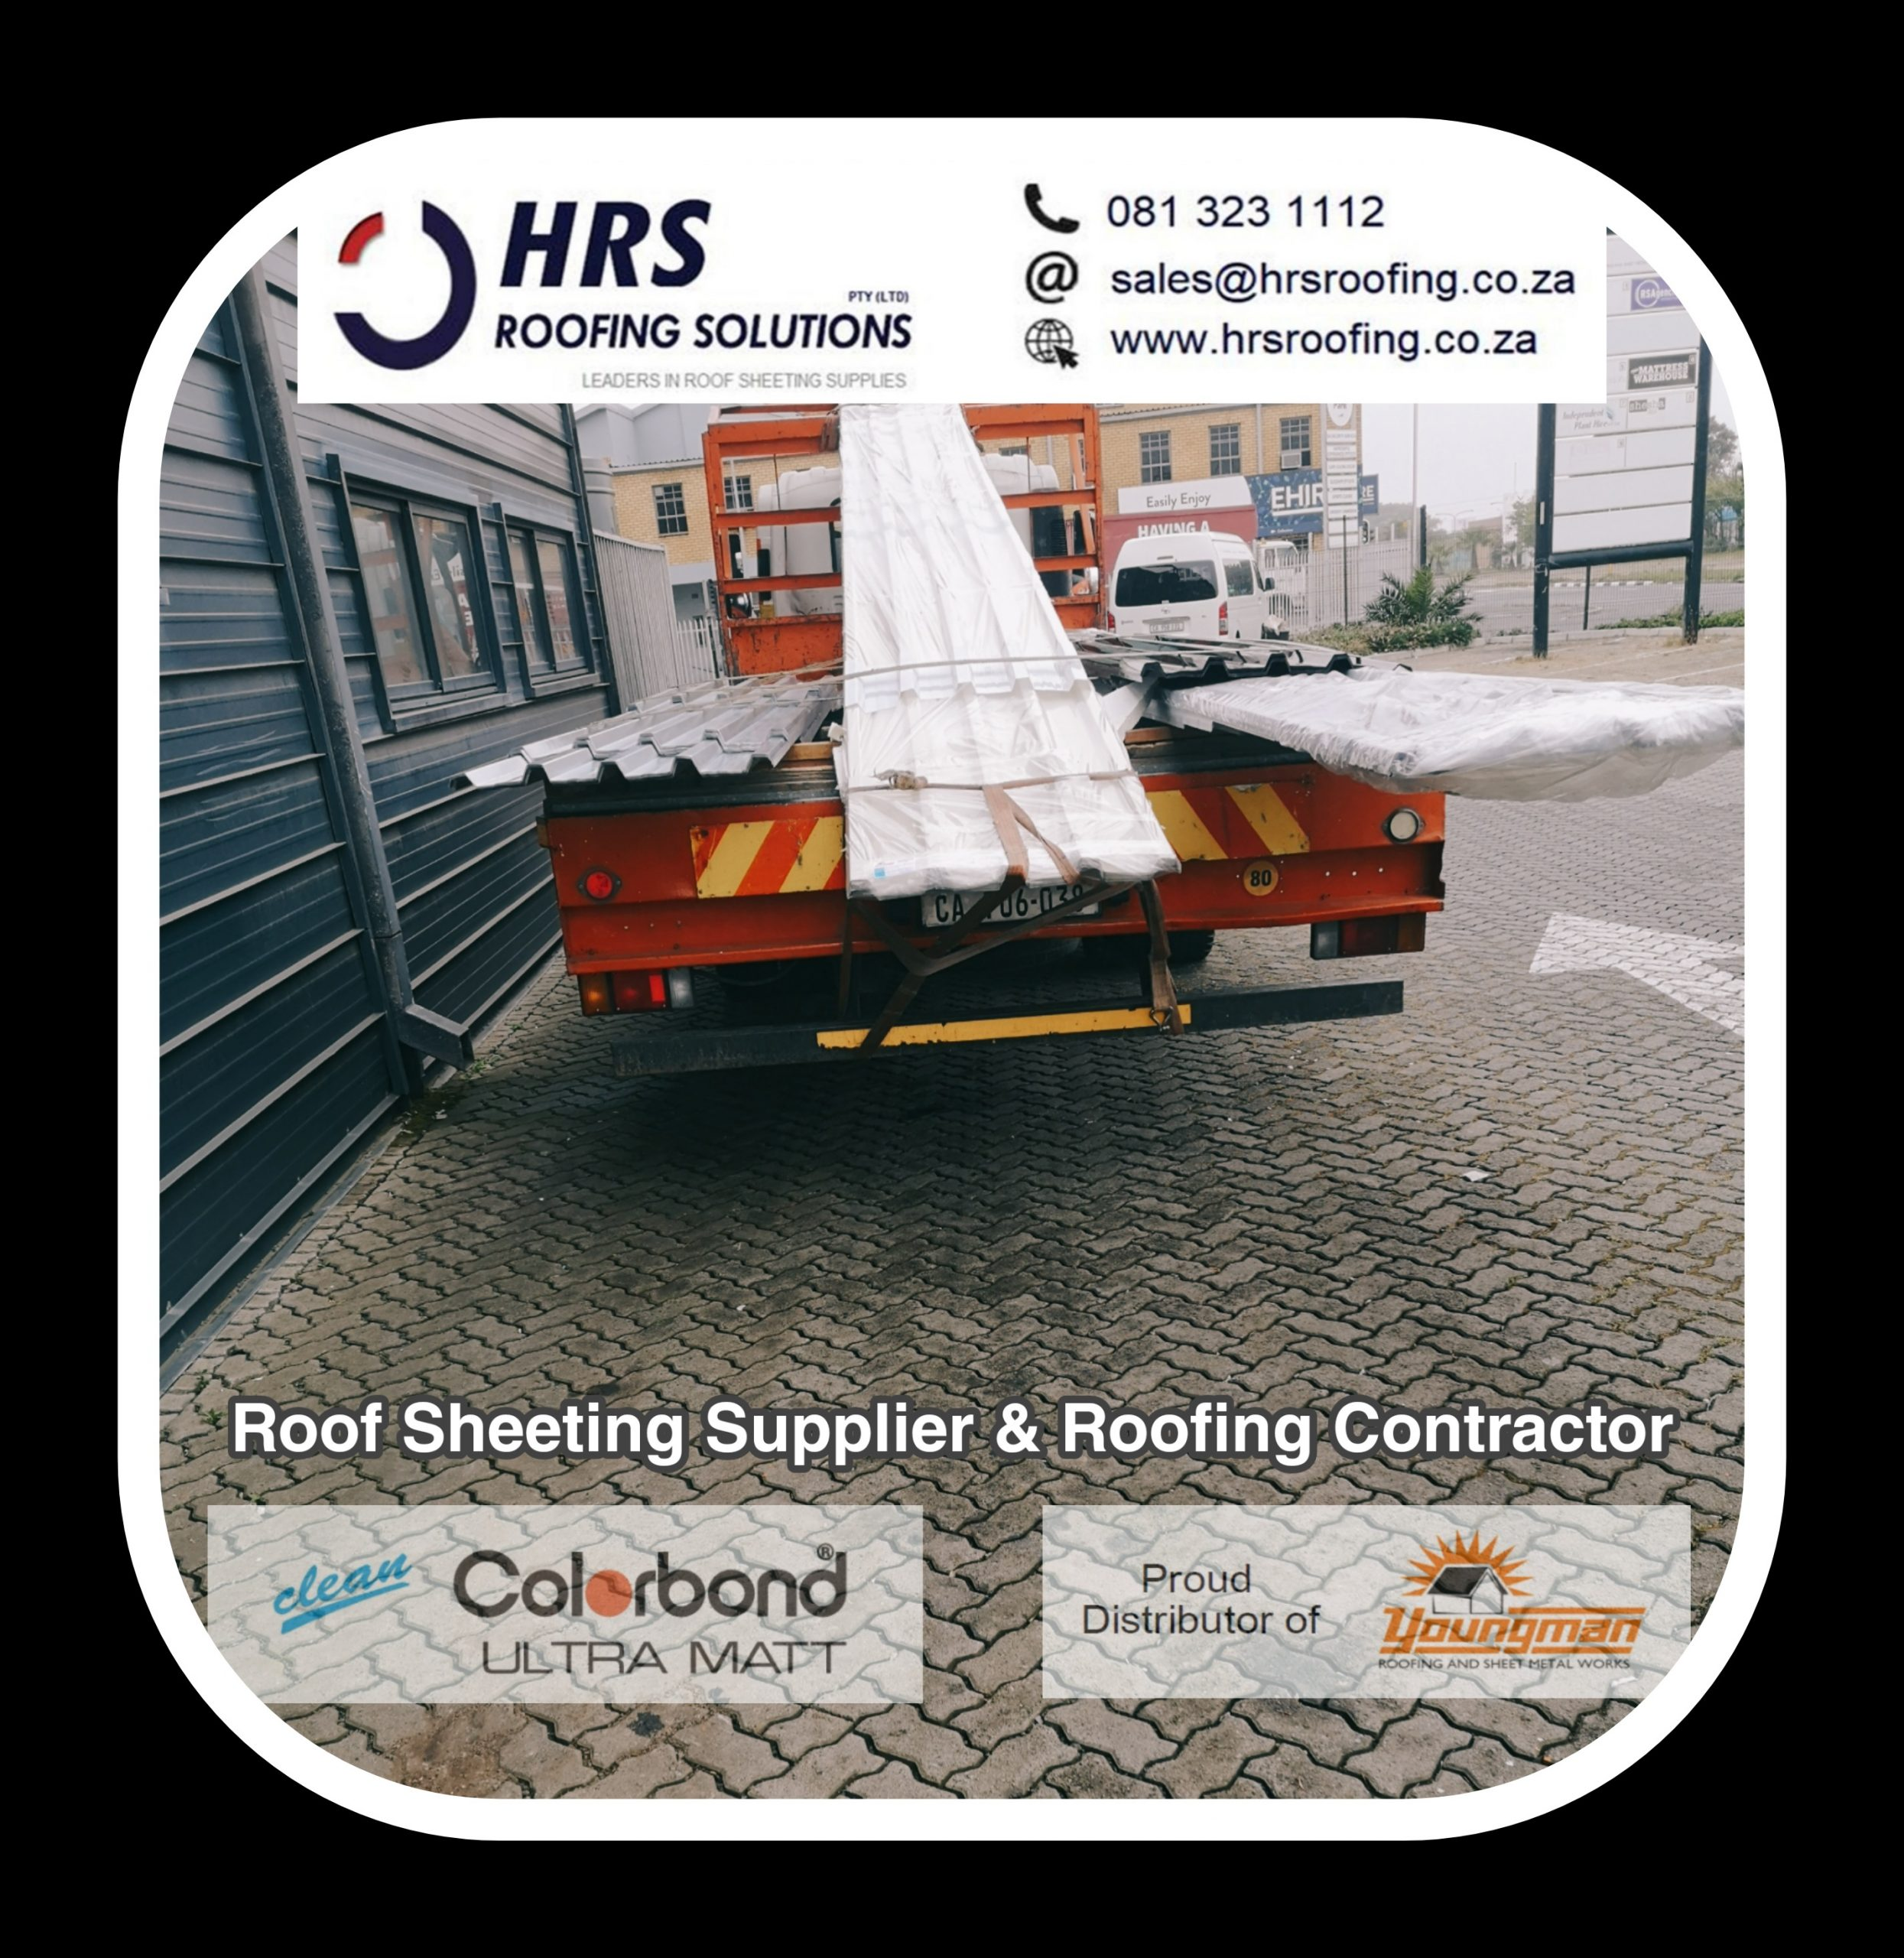 hrs roofing solutions we supply ibr Corrugated diamondek 407 and Springlok 700 scaled - Roofing Gallery